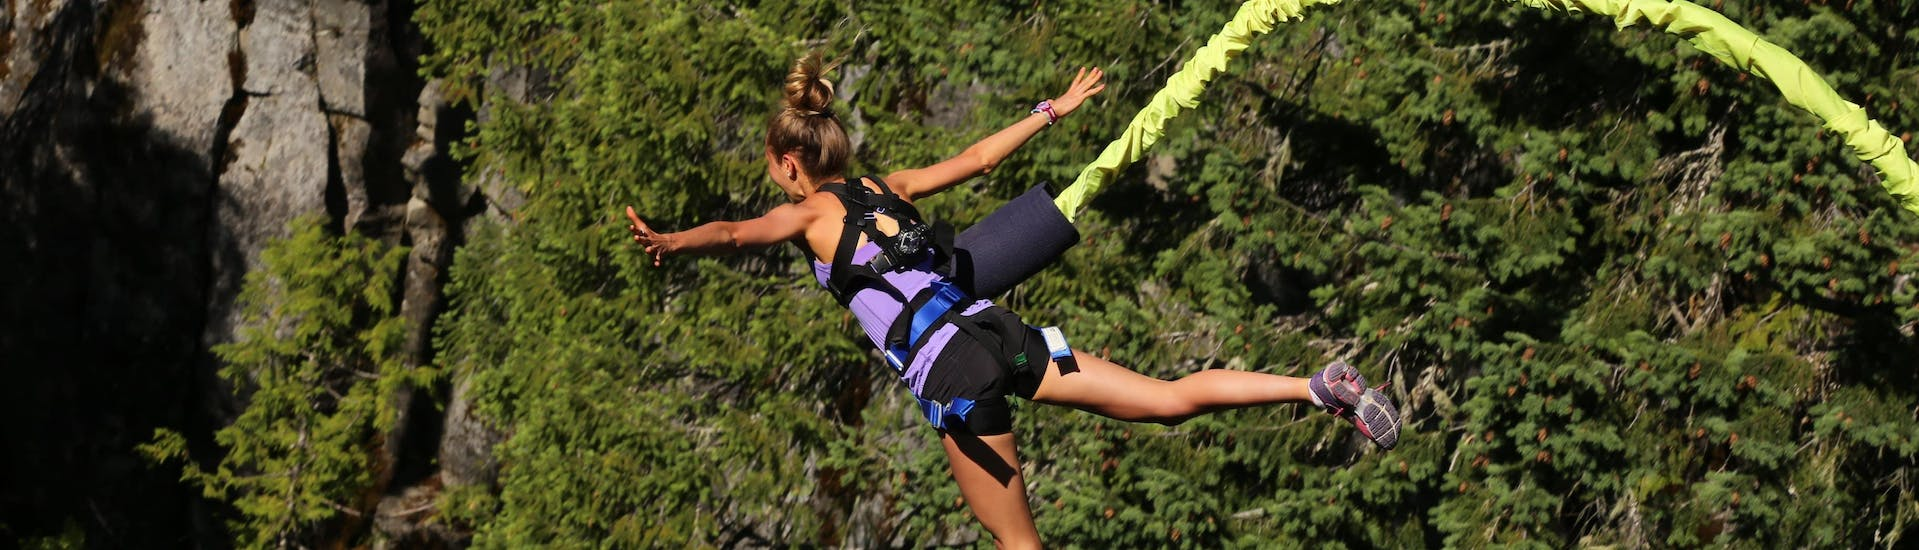 A young woman bungee jumping close to the bungee jumping hotspot of Spain.